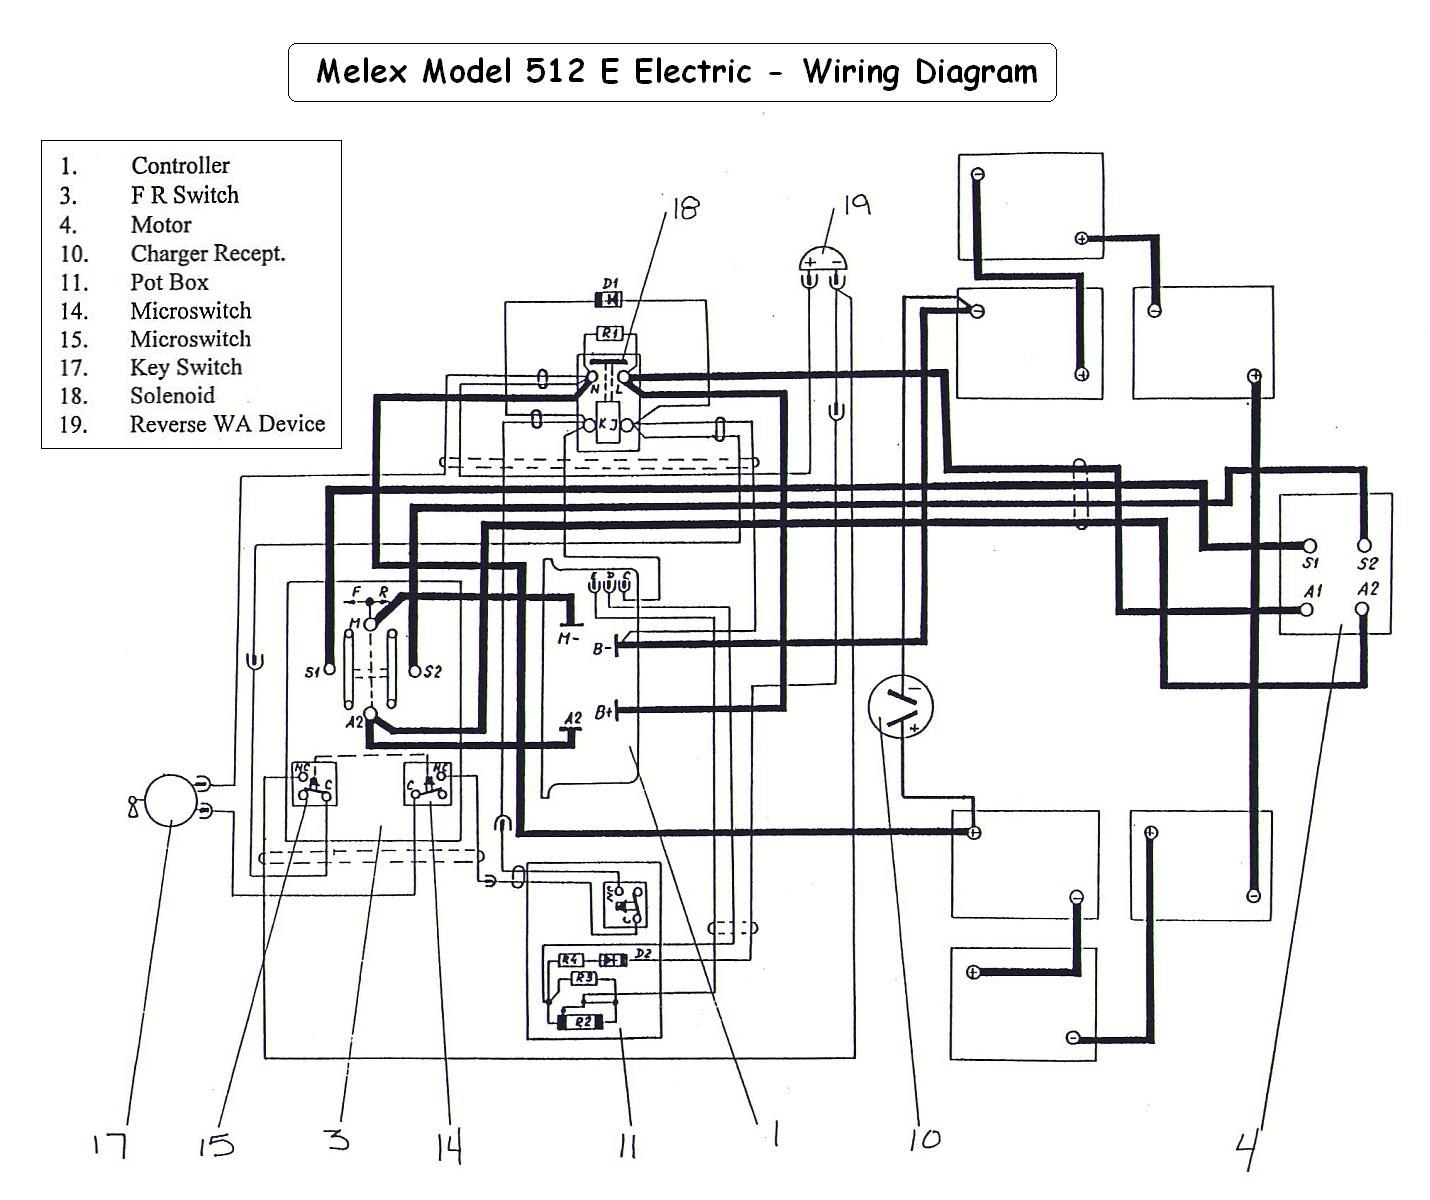 Melex512E_wiring_diagram vintagegolfcartparts com westinghouse golf cart wiring diagram at fashall.co